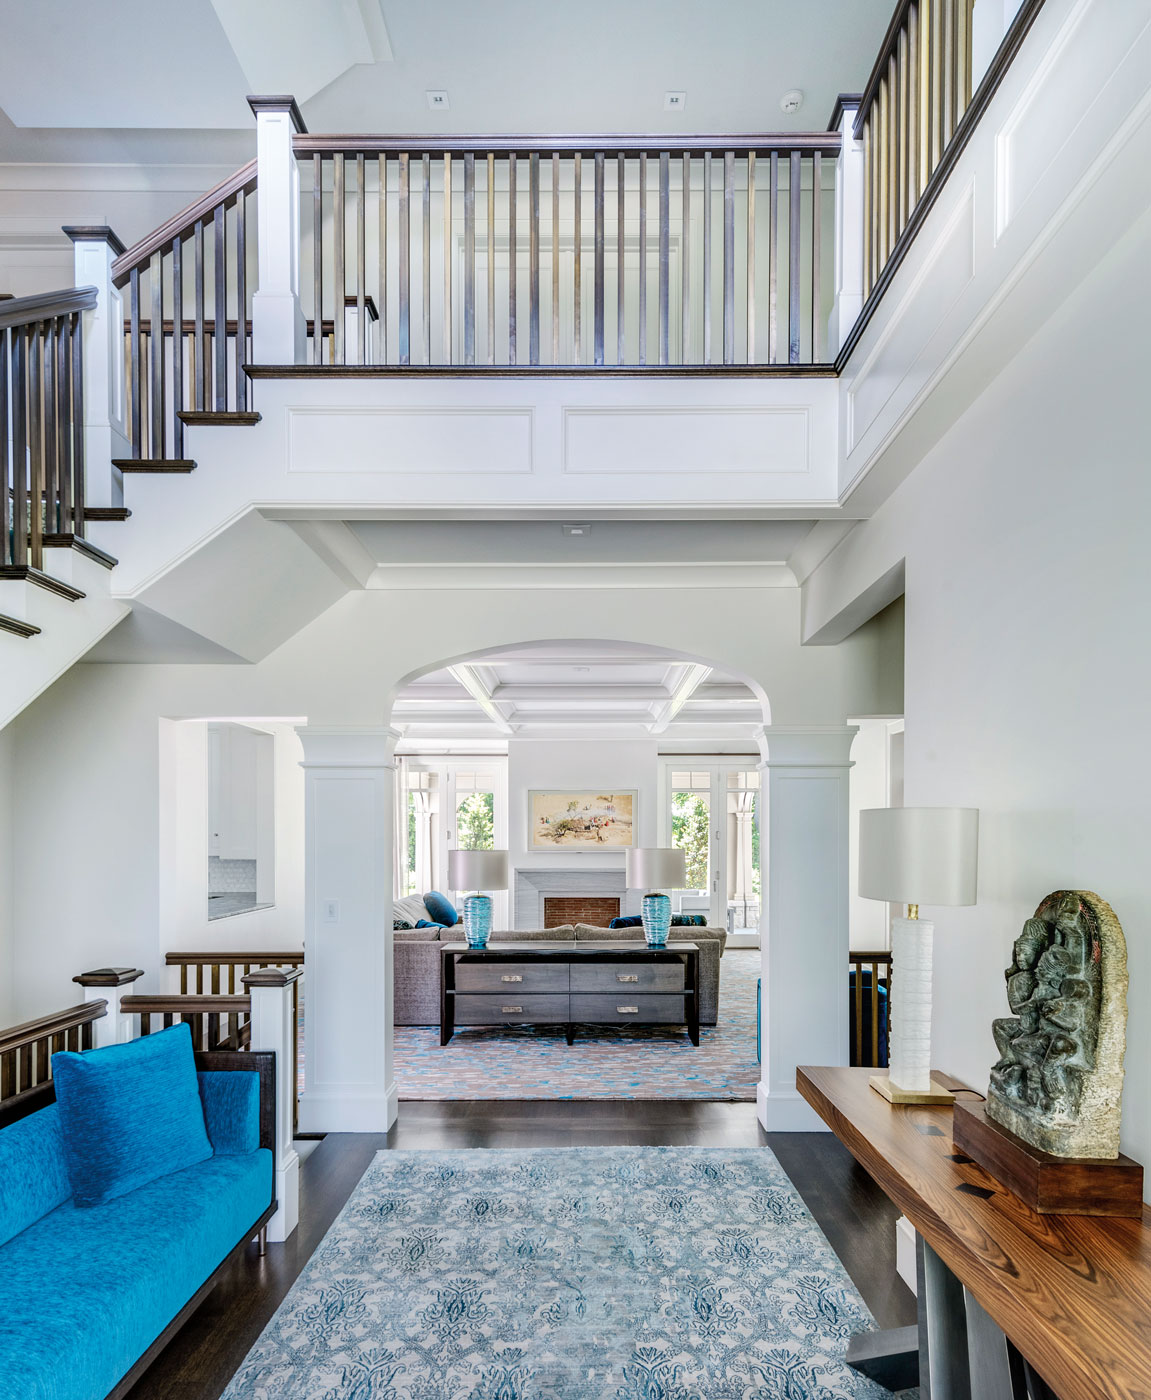 Stair hall of a high-end custom suburban Boston home designed by architect Morehouse MacDonald and Associates and constructed by Sanford Custom Builders.